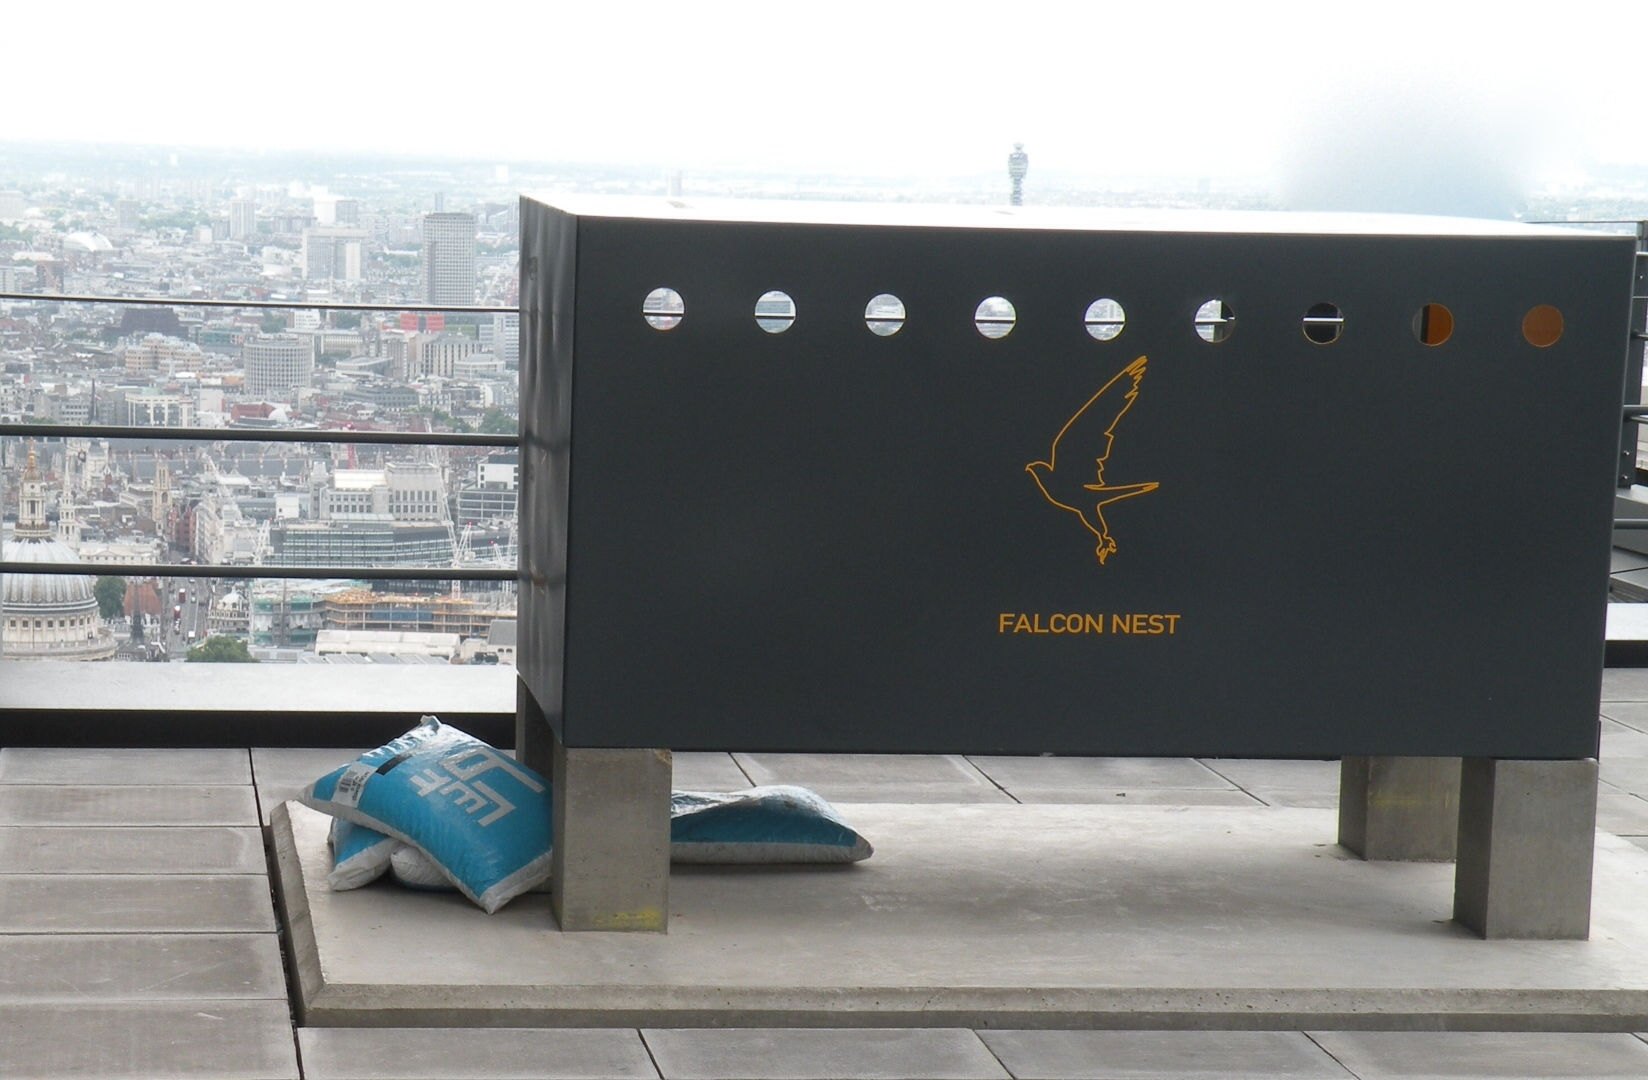 The Leadenhall Building's Falcon Nest